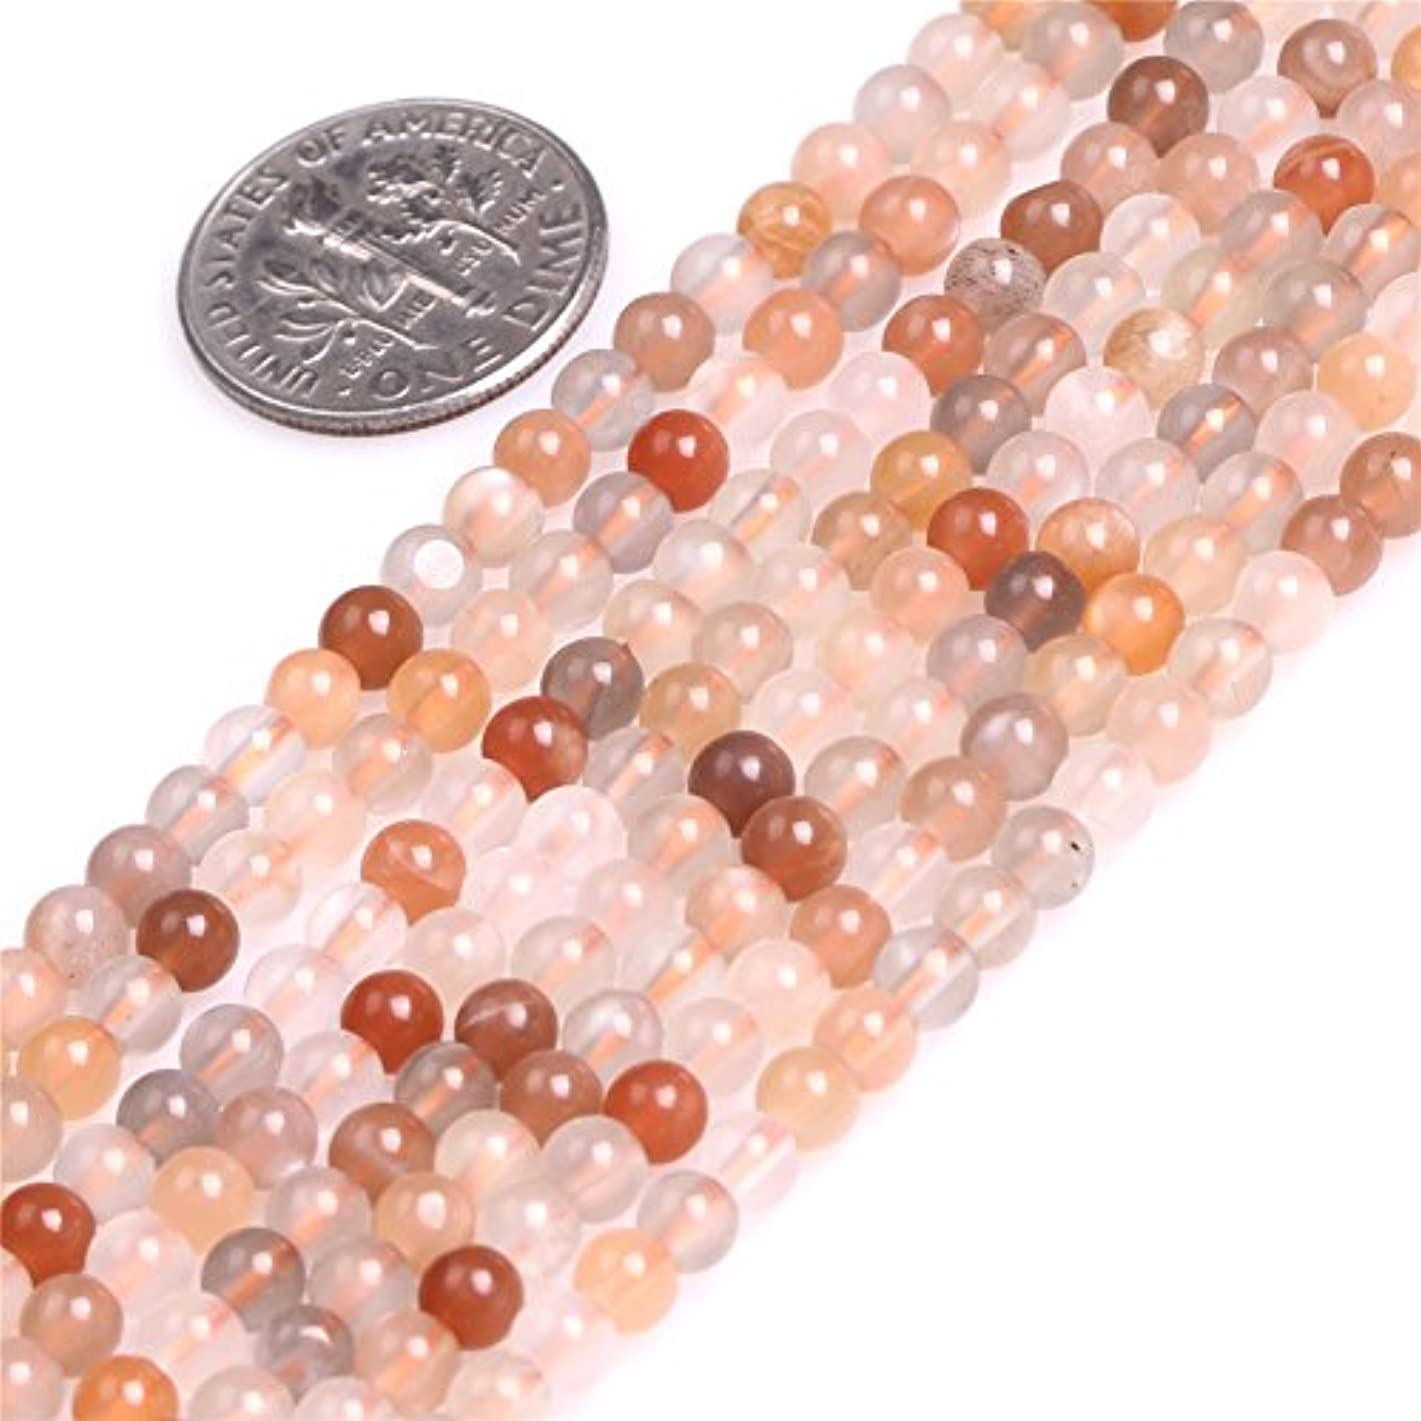 4mm Moon Stone Beads for Jewelry Making Natural Semi Precious Gemstone Round Mixed Color Strand 15